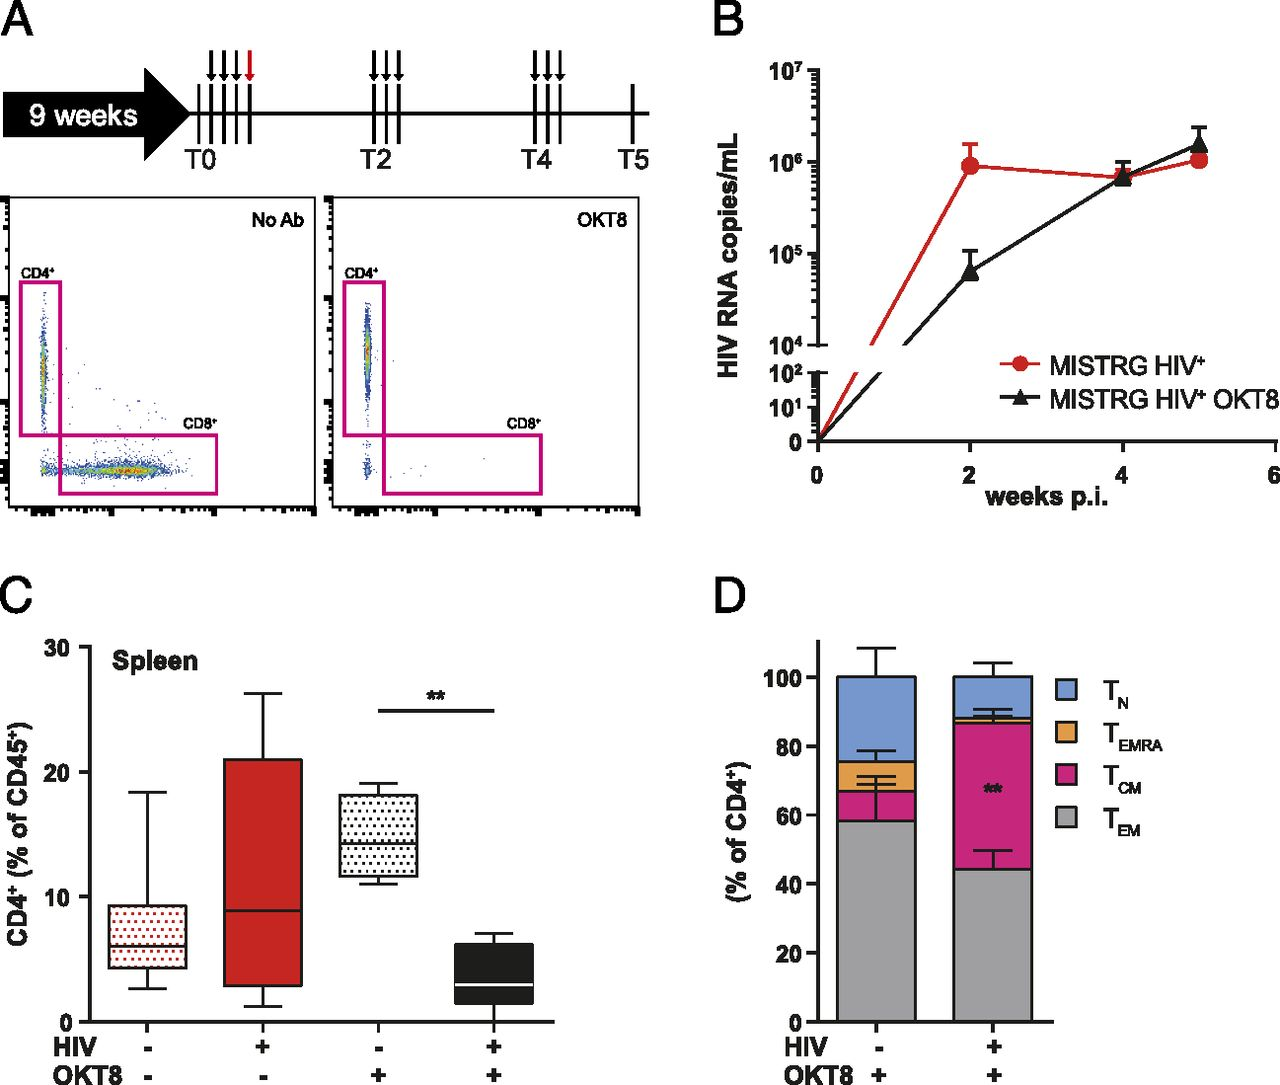 Differential Dynamics of HIV Infection in Humanized MISTRG versus